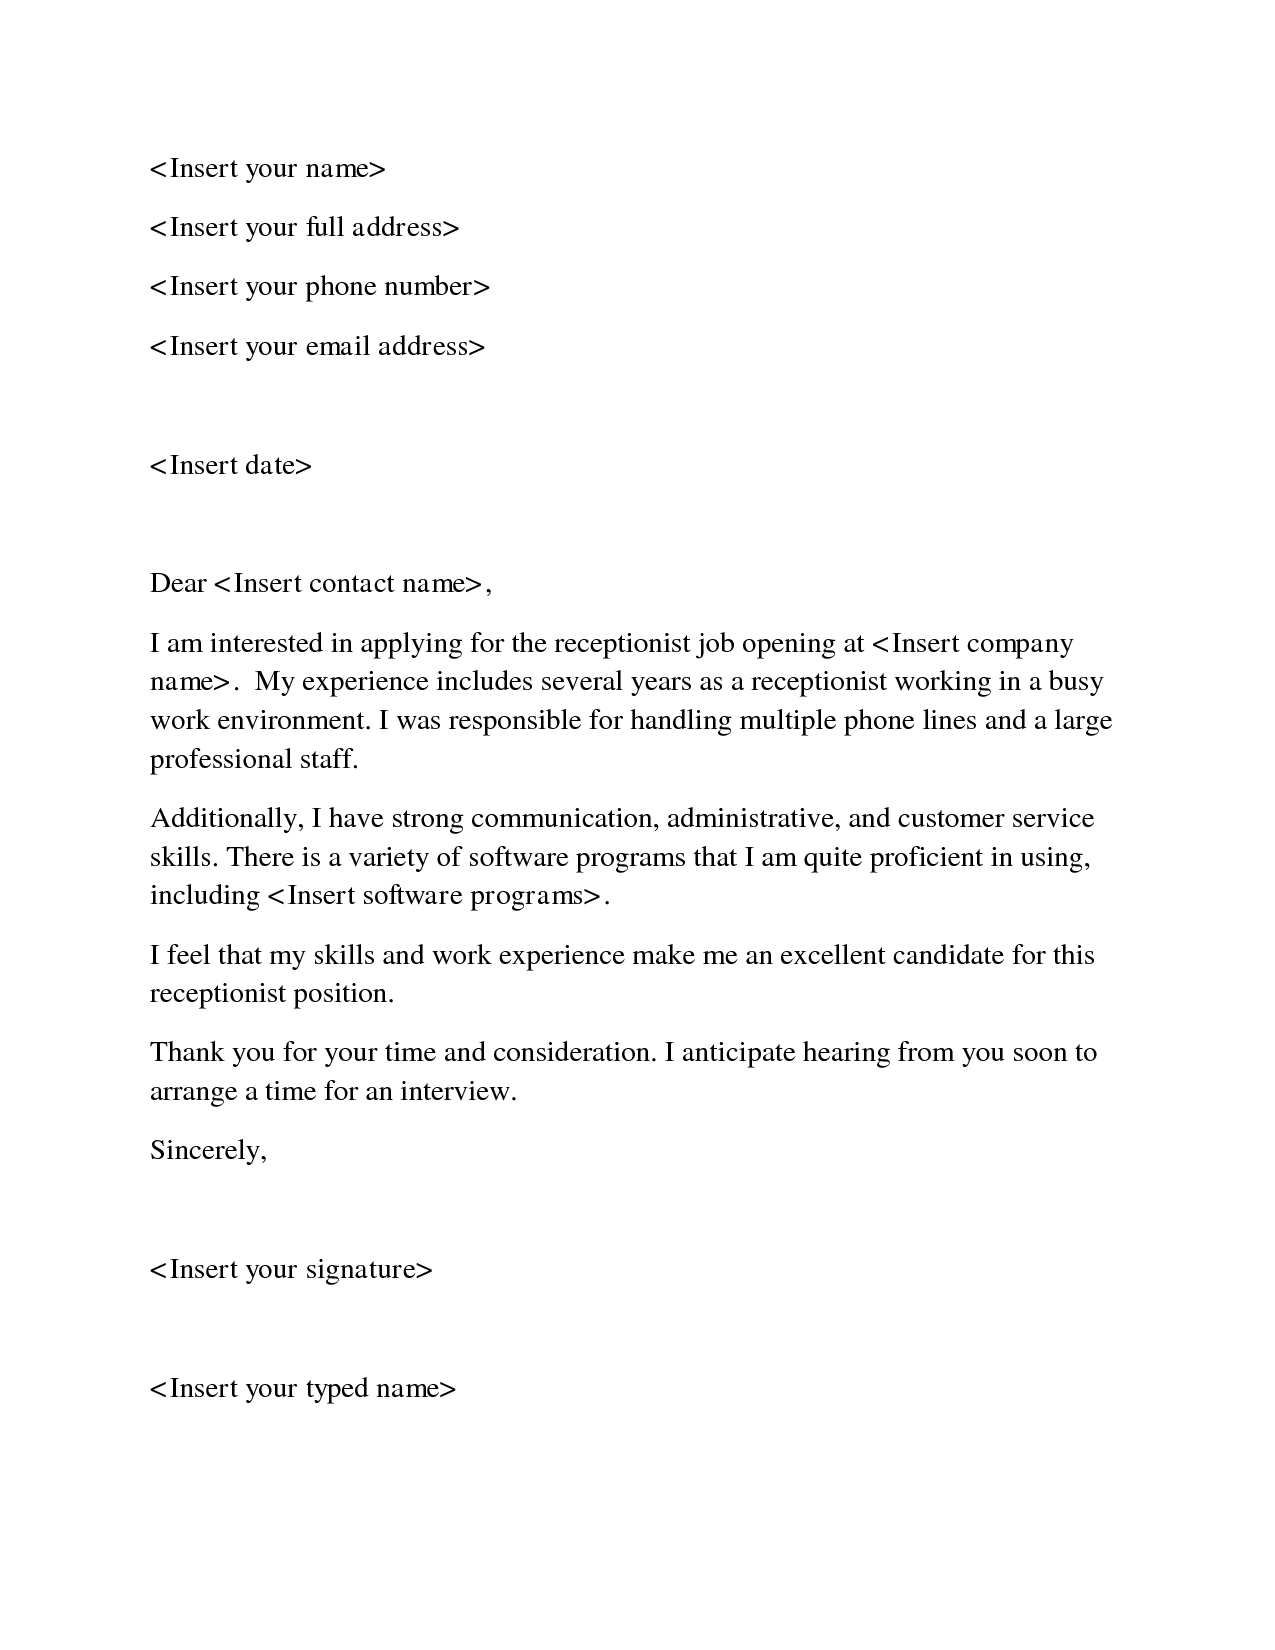 probate letter template cover letter for part time job bulk template pixcover letter samples